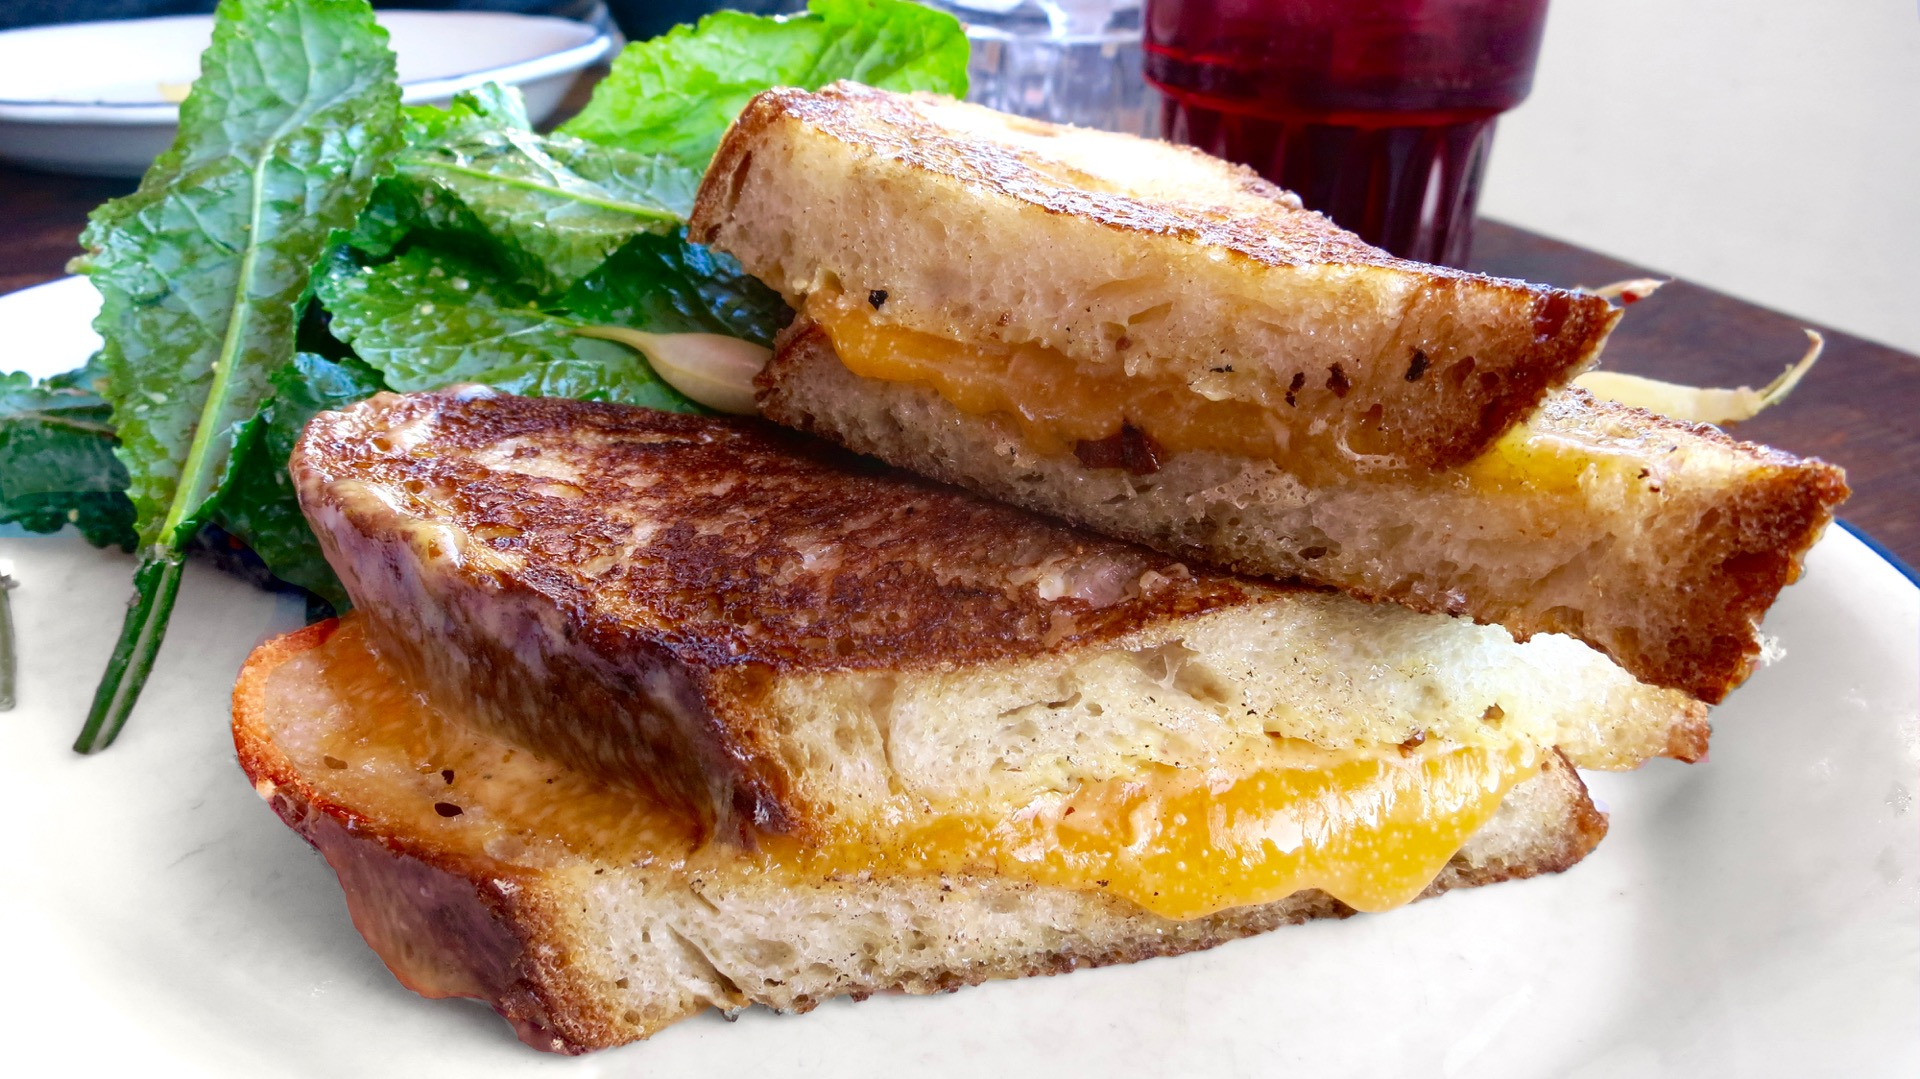 The whole grain mustard pairs well with the sharp cheddar on Grand Lake Kitchen's simple yet satisfying grilled cheese sandwich.